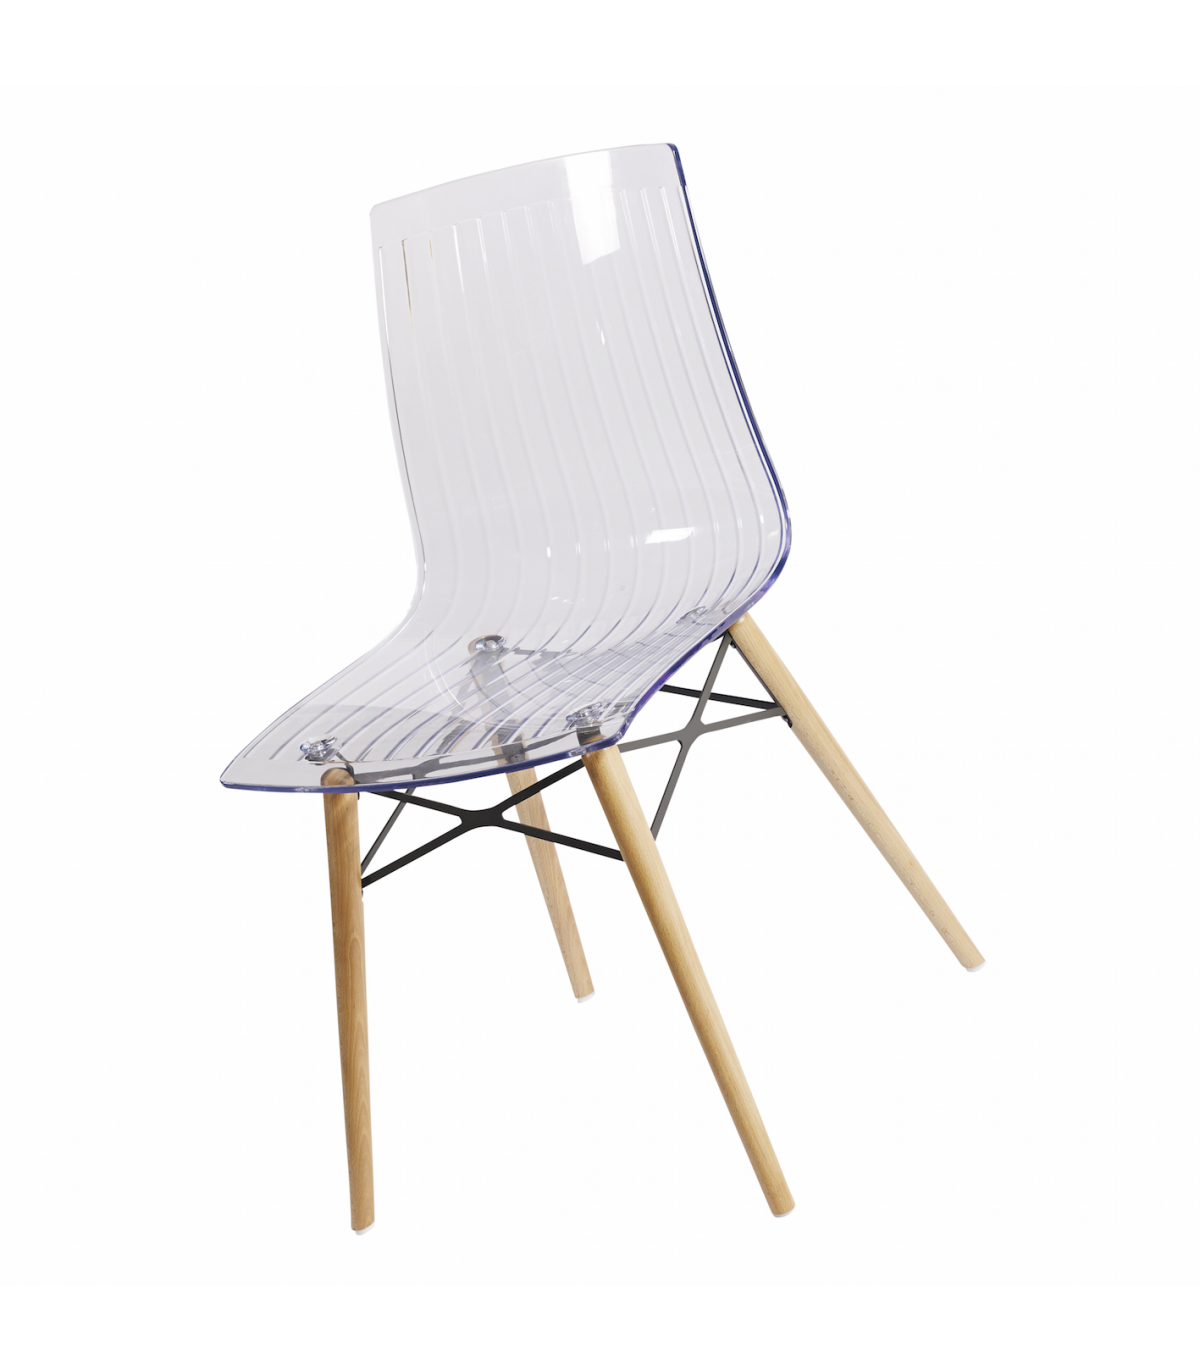 Chaises en plastique transparent chaises en plastique transparent maison design chaise en - Tabouret de bar plexiglas transparent ...